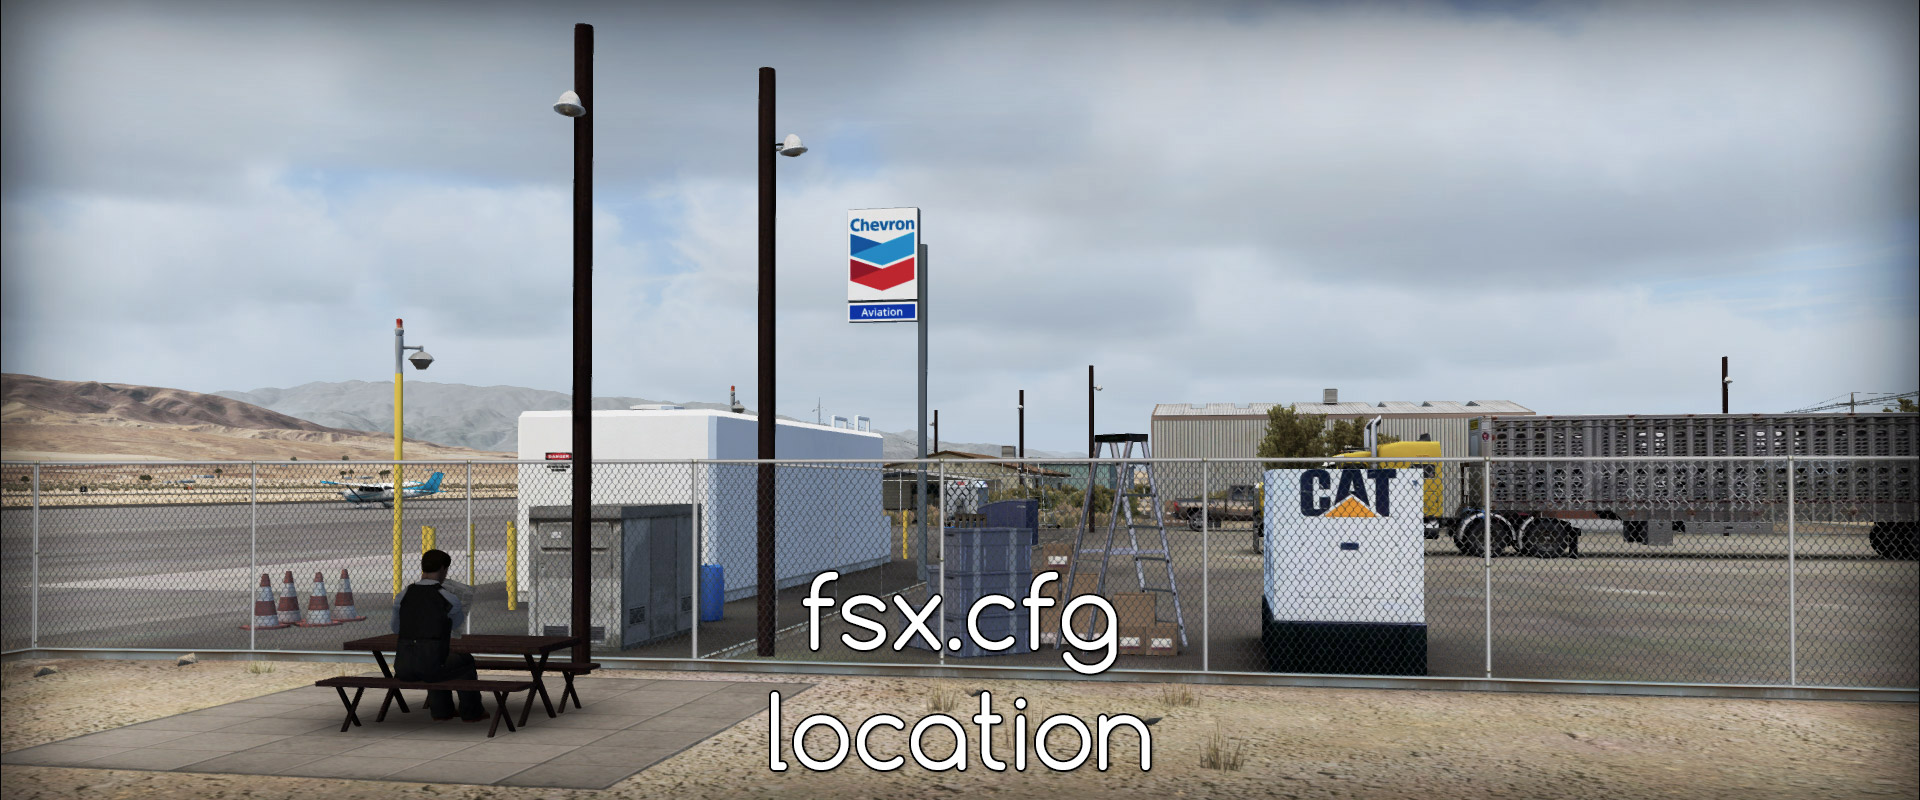 fsx.cfg location